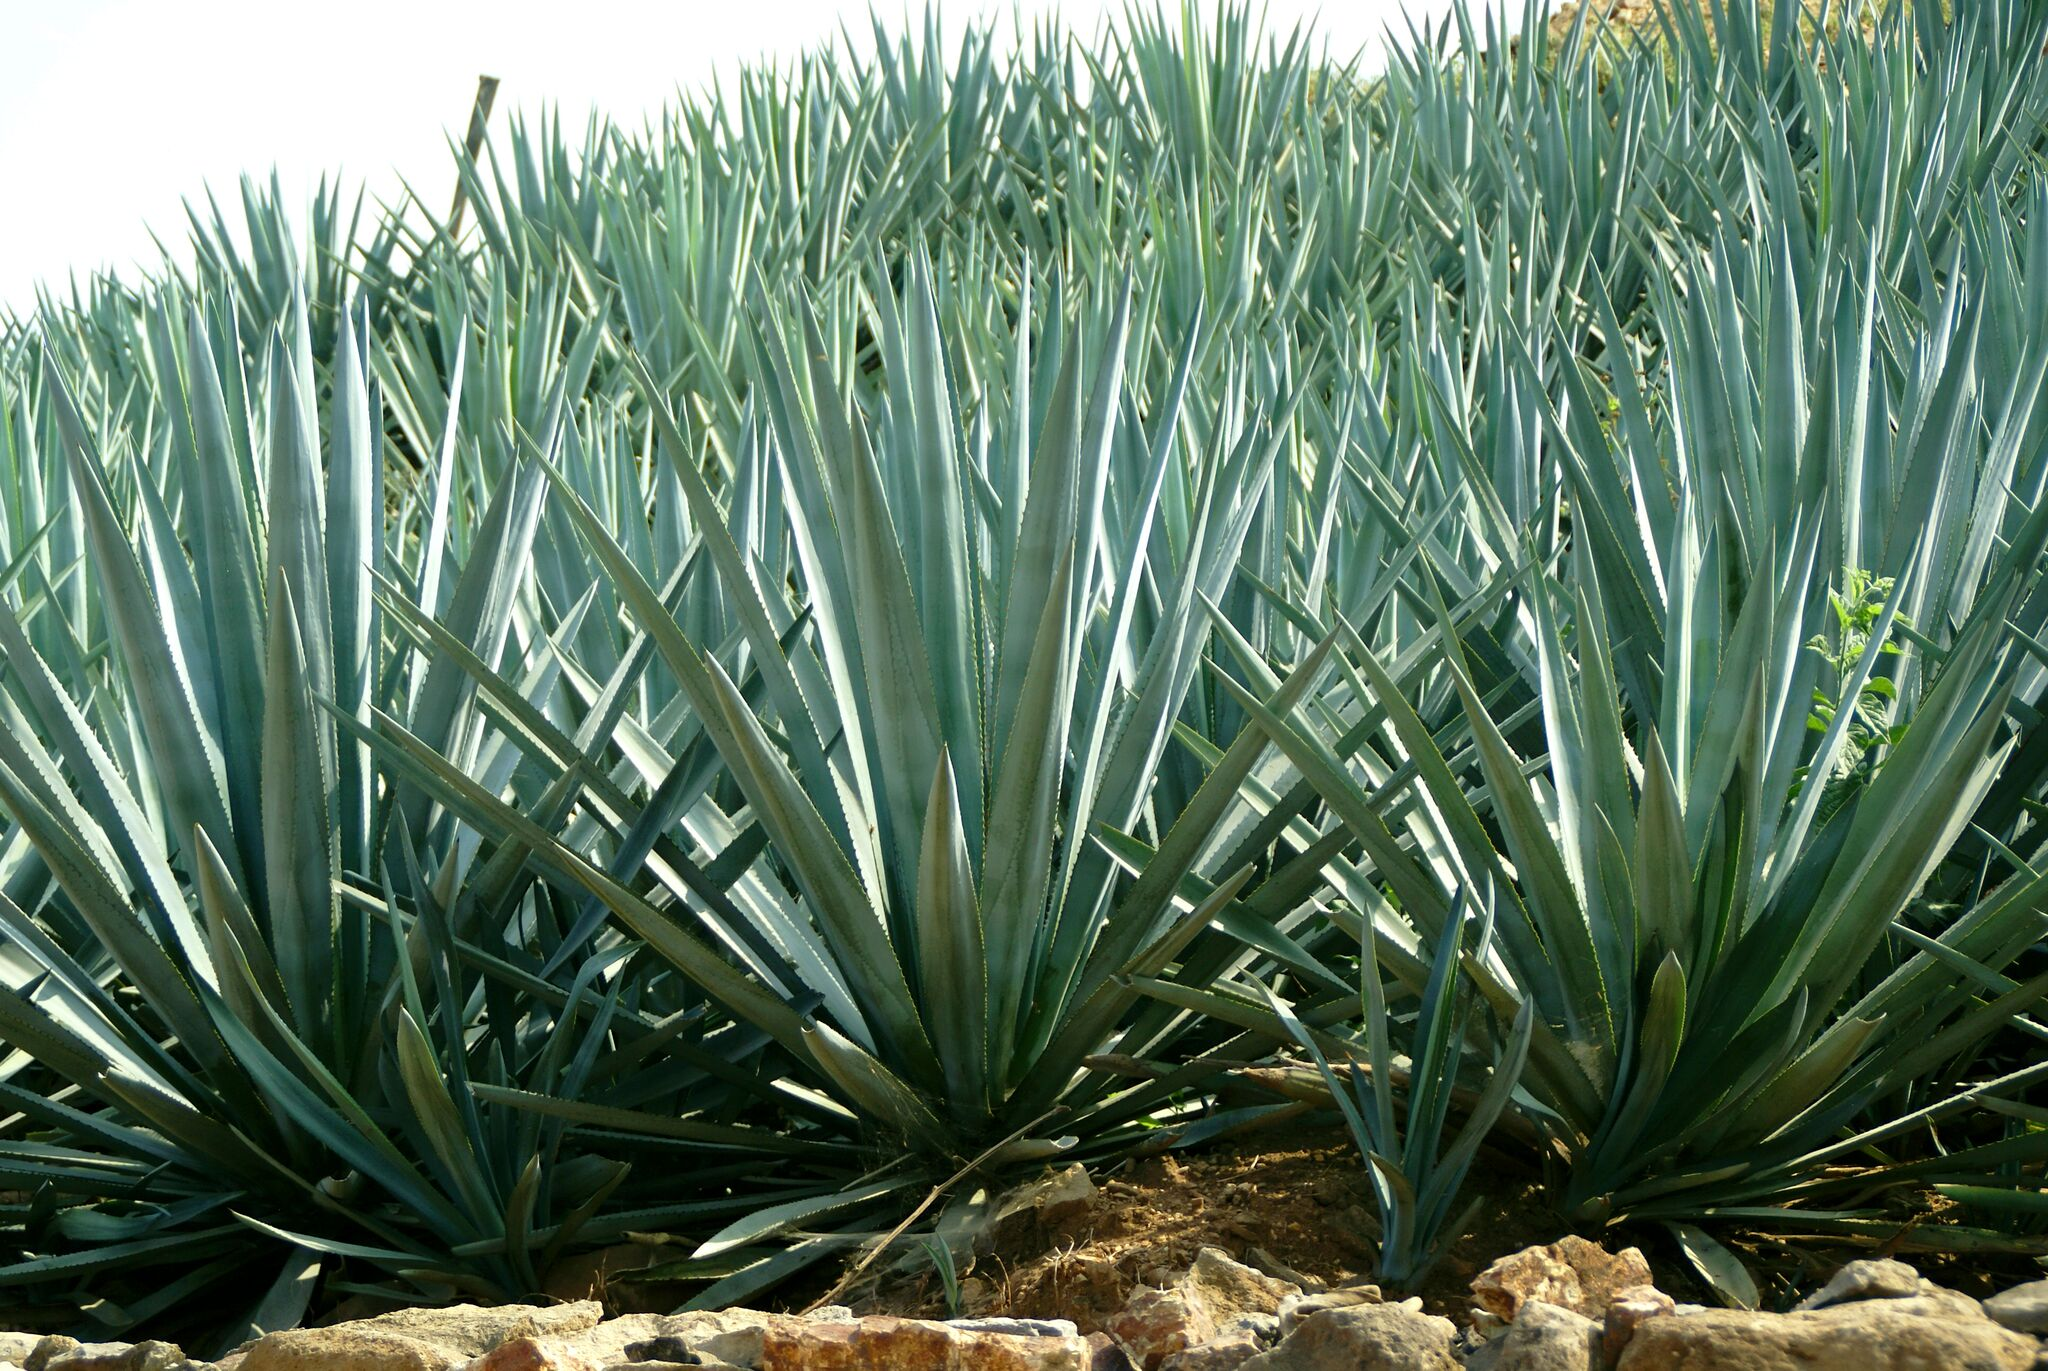 Blue Agave Tequila Plant 10 Agave Facts You Did...